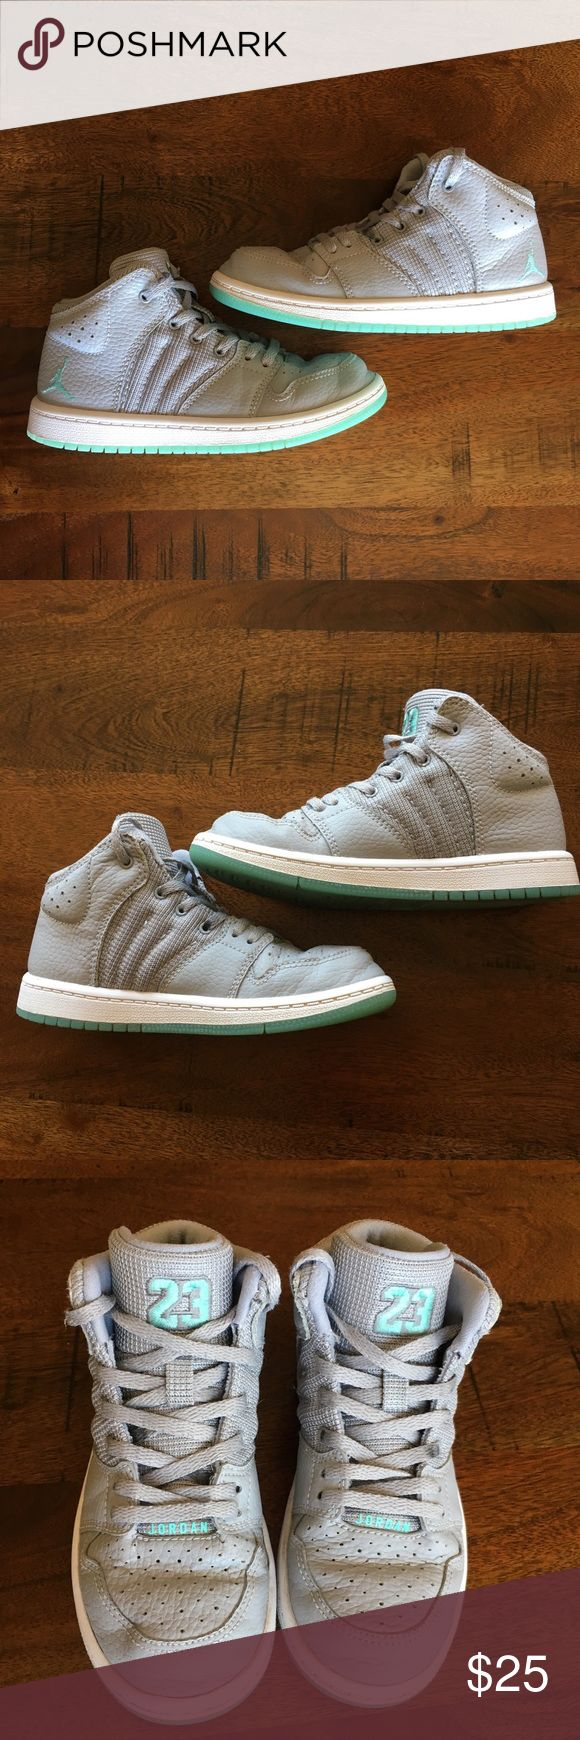 Jordan Girls Shoes These clean Michael Jordan girls shoes are a size 12. With wear, the shoes developed dimples at the tip of the shoes as seen above. These are well kept shoes and would need a new set of shoe laces. Jordan Shoes Sneakers